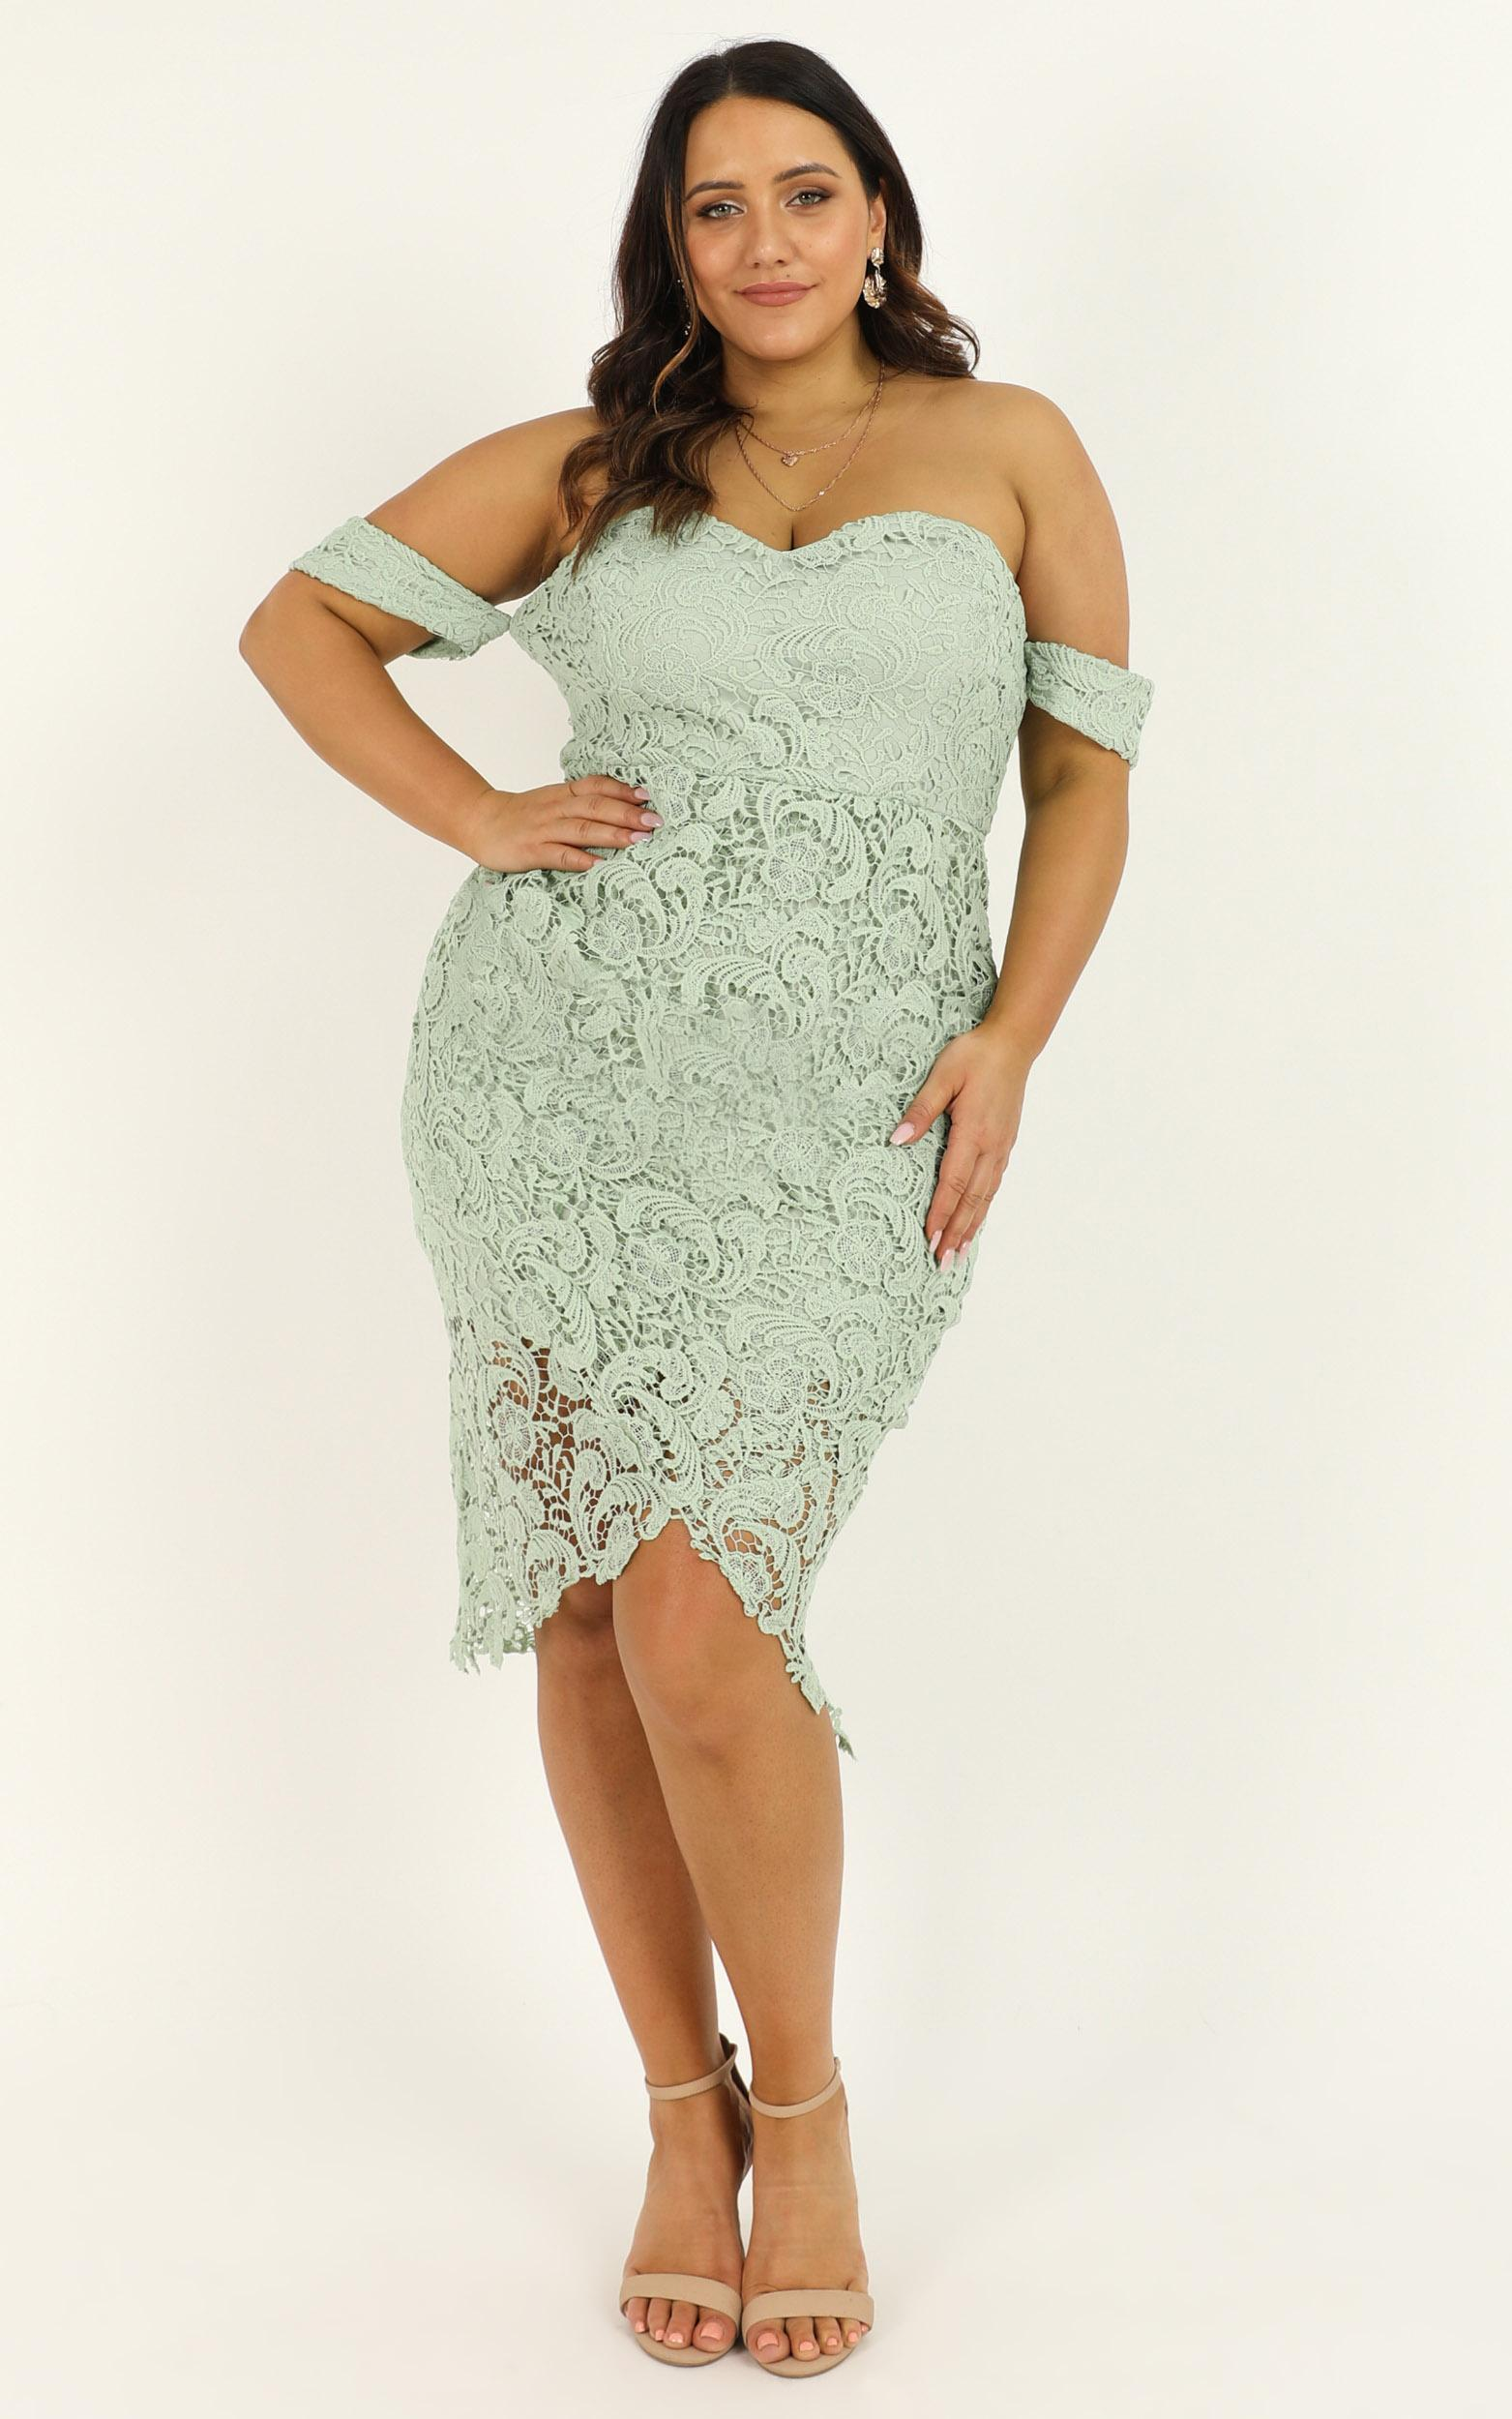 Try It Out Dress in sage lace - 20 (XXXXL), Sage, hi-res image number null